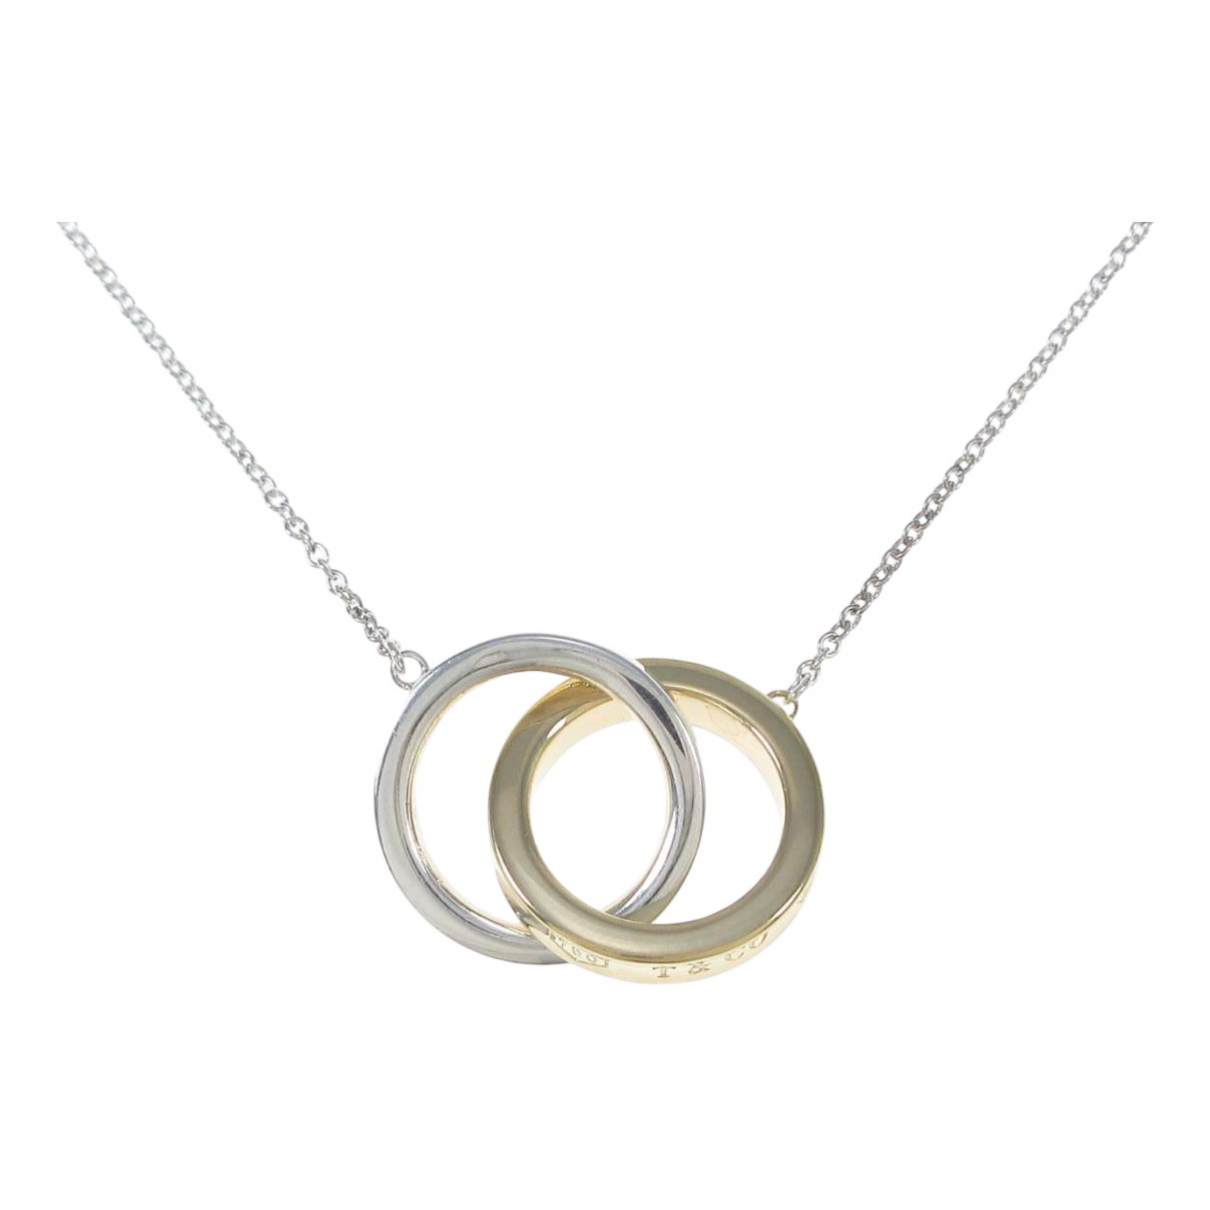 Tiffany & Co \N Kette in  Silber Gelbgold